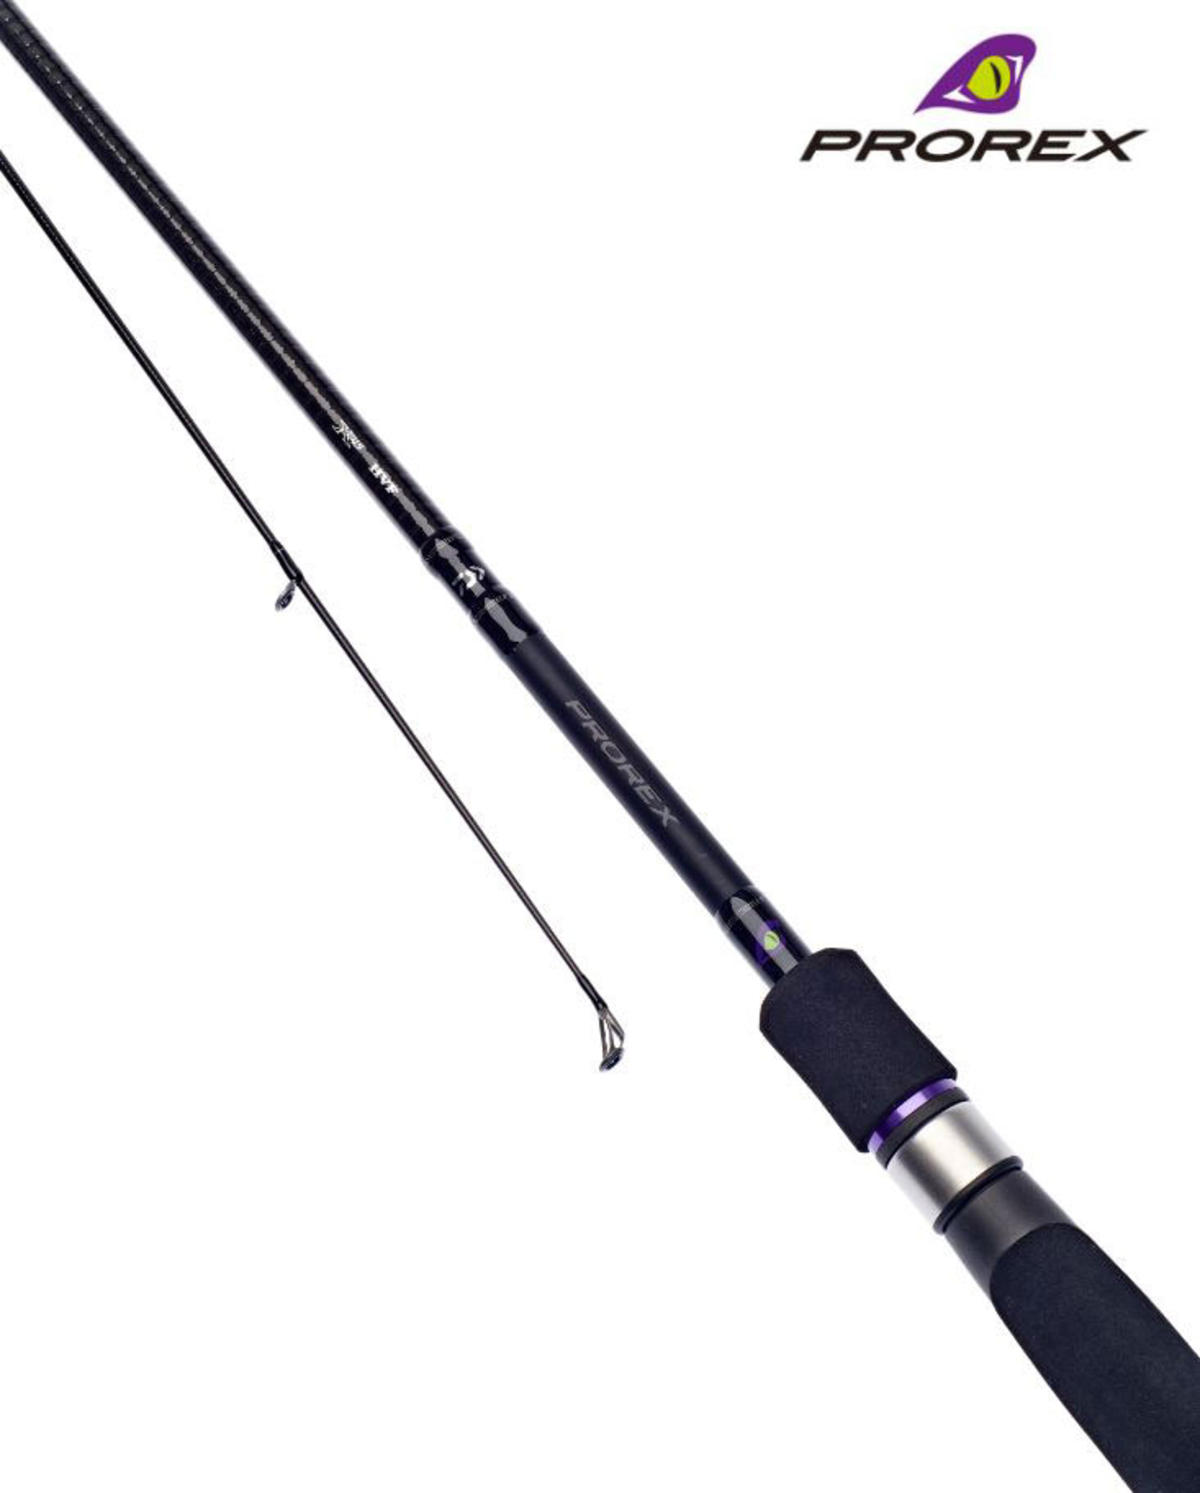 New Daiwa Prorex X Spinning Rods 6ft-9ft Pike / Predator - All Models Available